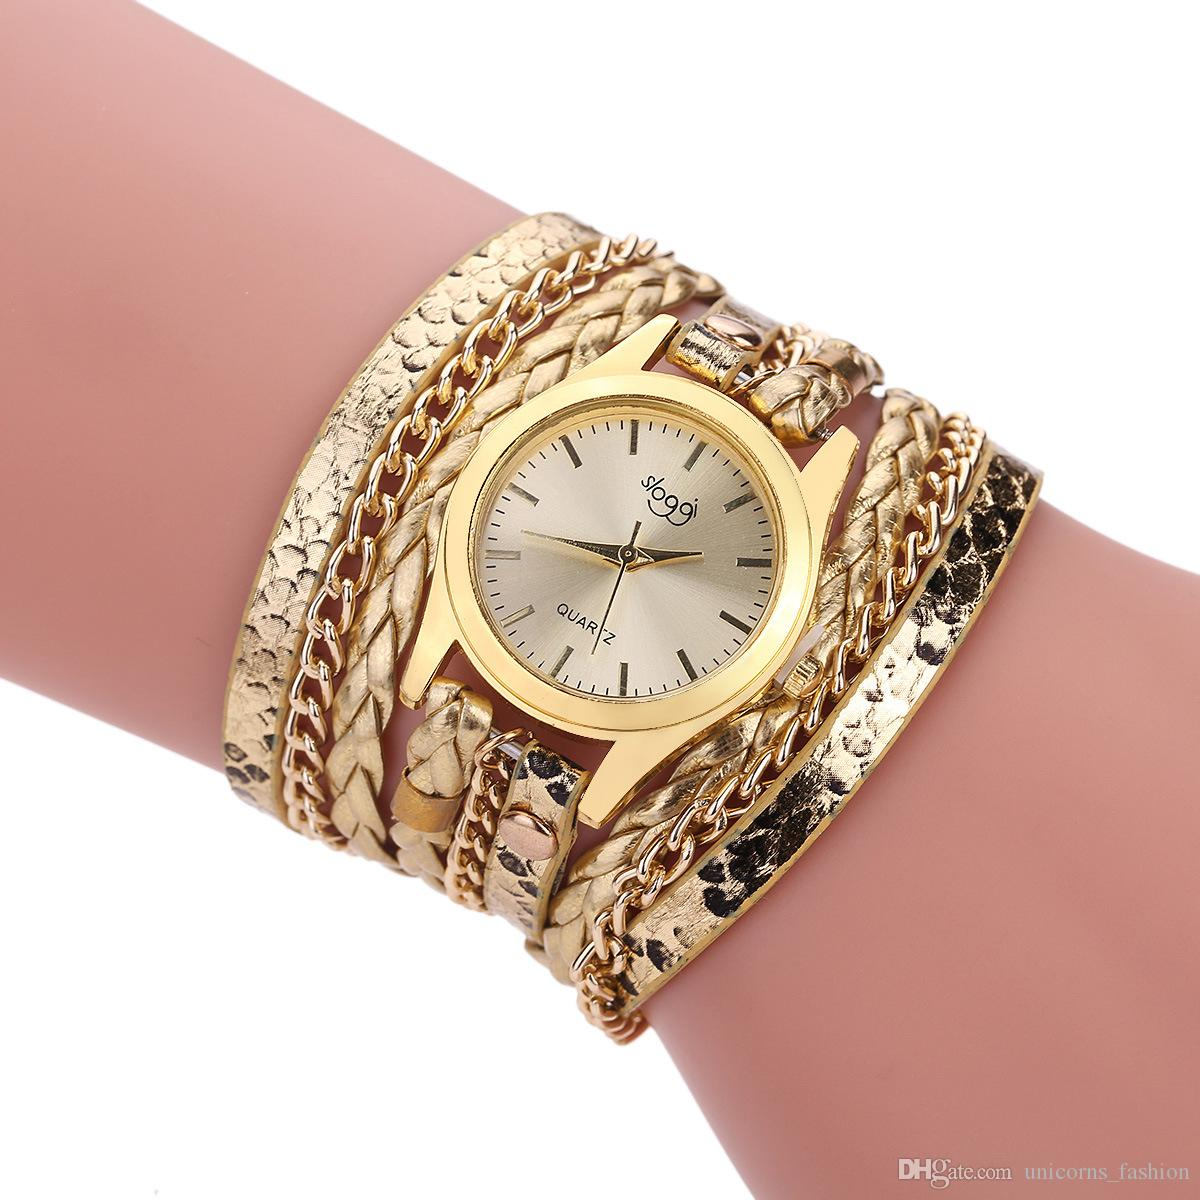 Nuovo Charming Vintage Weave Wrap Leather Chain Bracelet Watch per donna Ladies 50PCS 8 colori CNY183